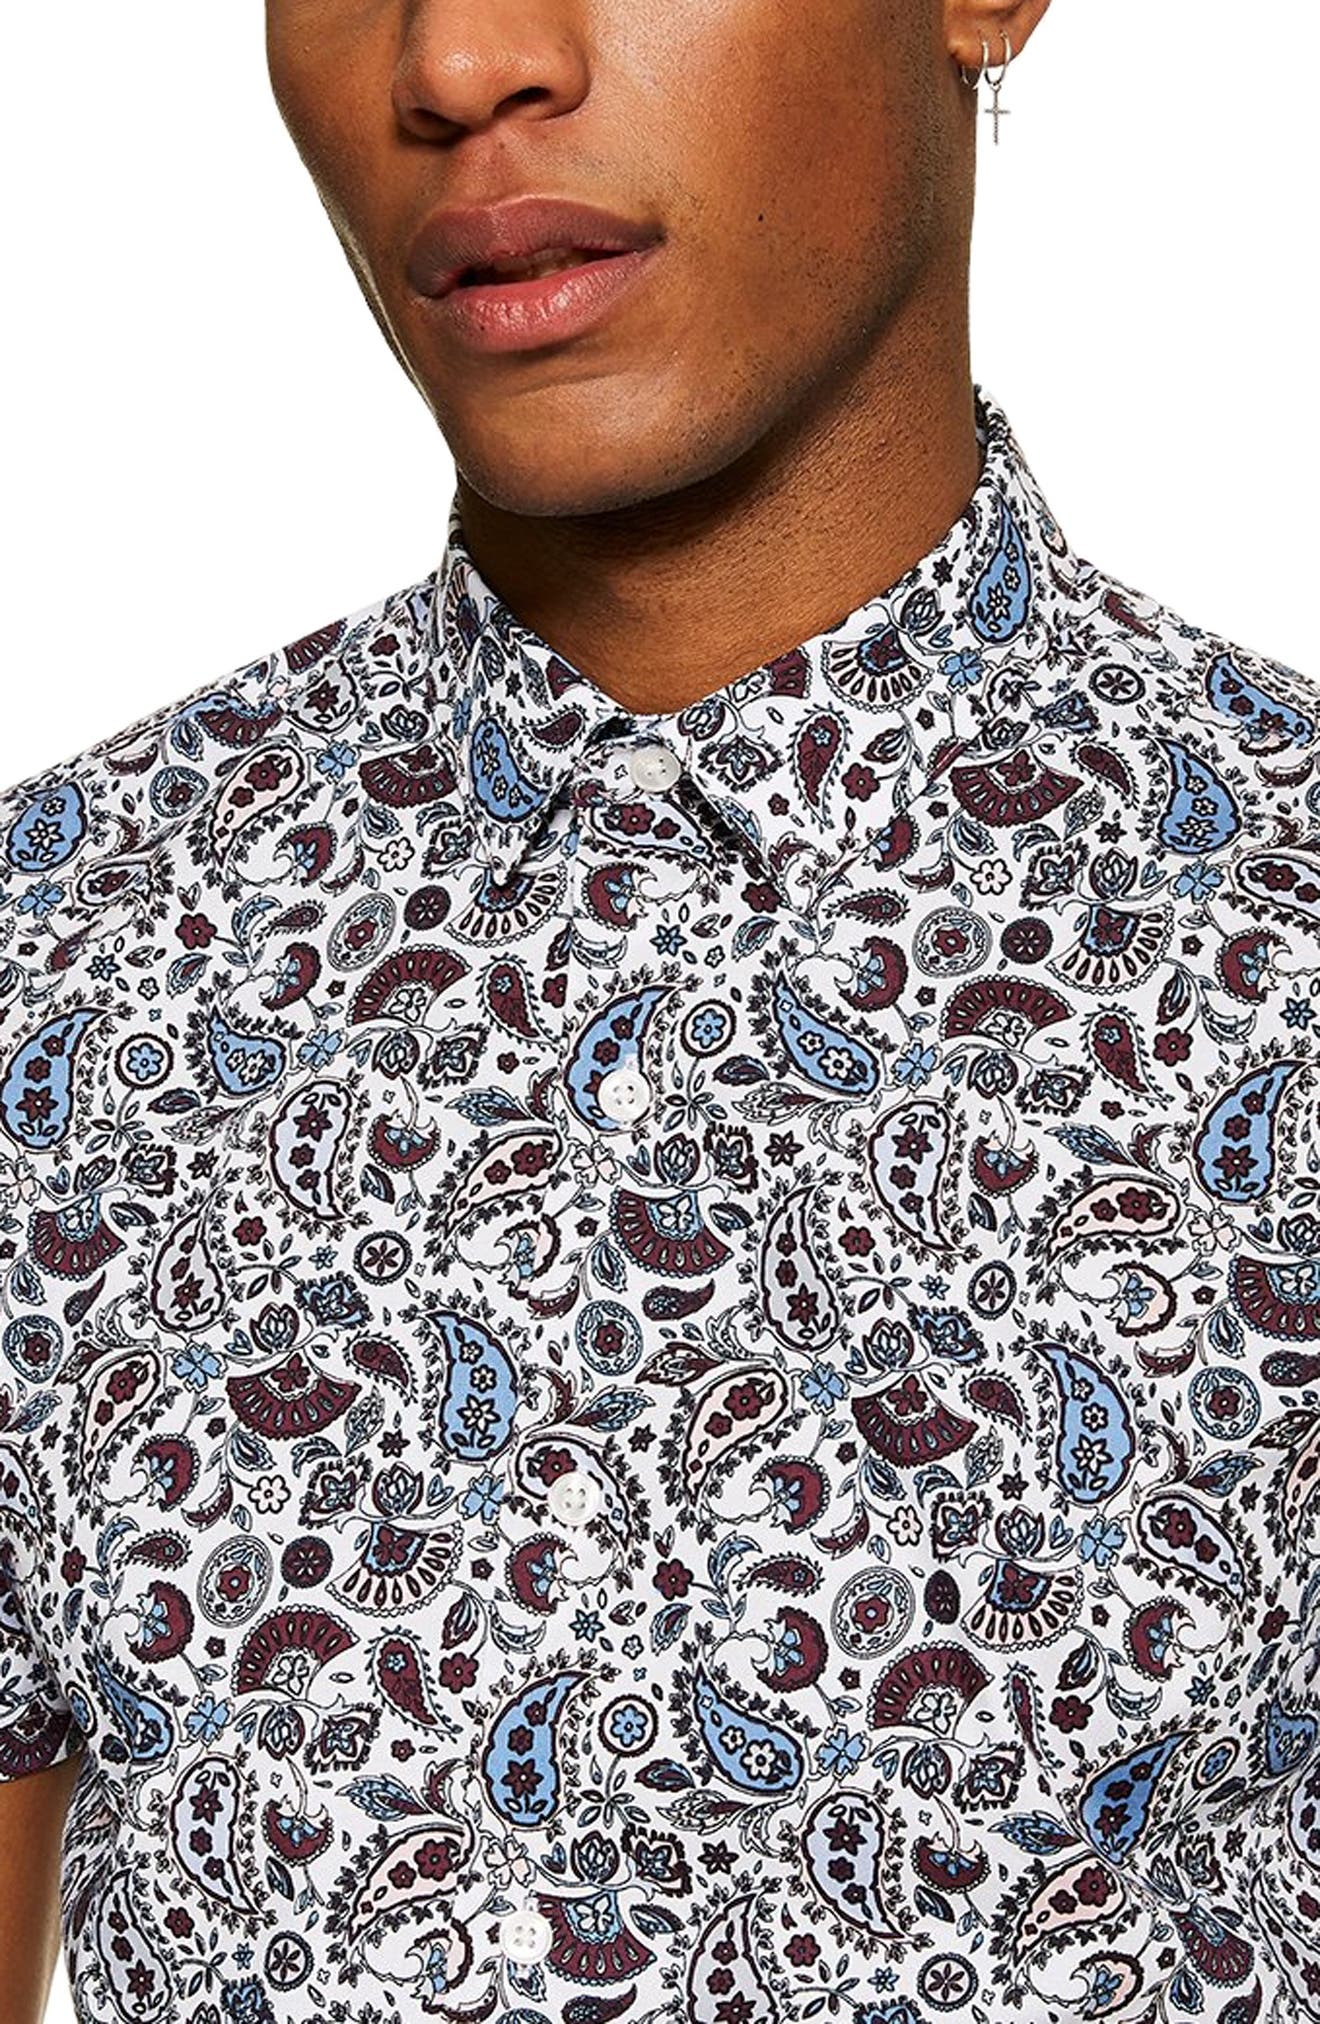 TOPMAN, Paisley Print Slim Fit Shirt, Alternate thumbnail 2, color, BLUE MULTI